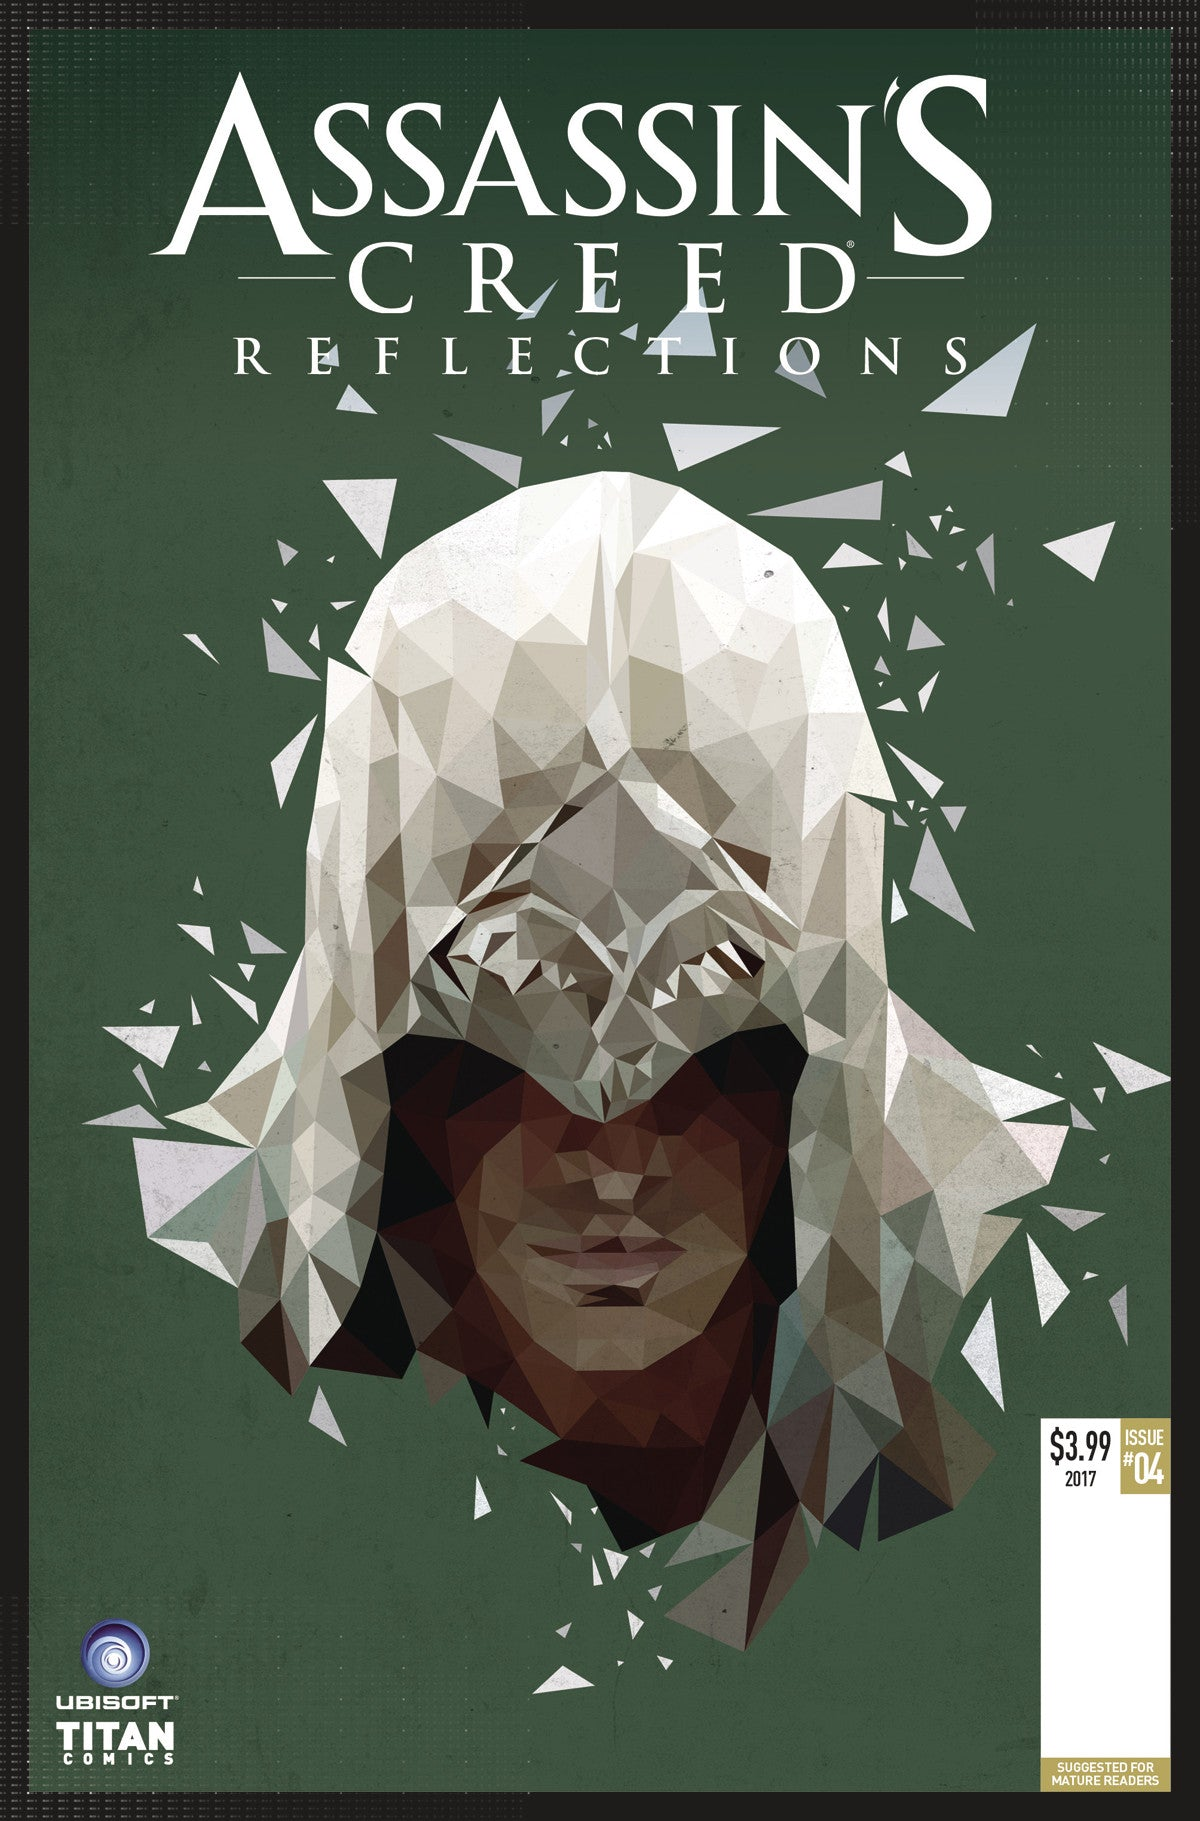 ASSASSINS CREED REFLECTIONS #4 (OF 4) CVR C POLYGON